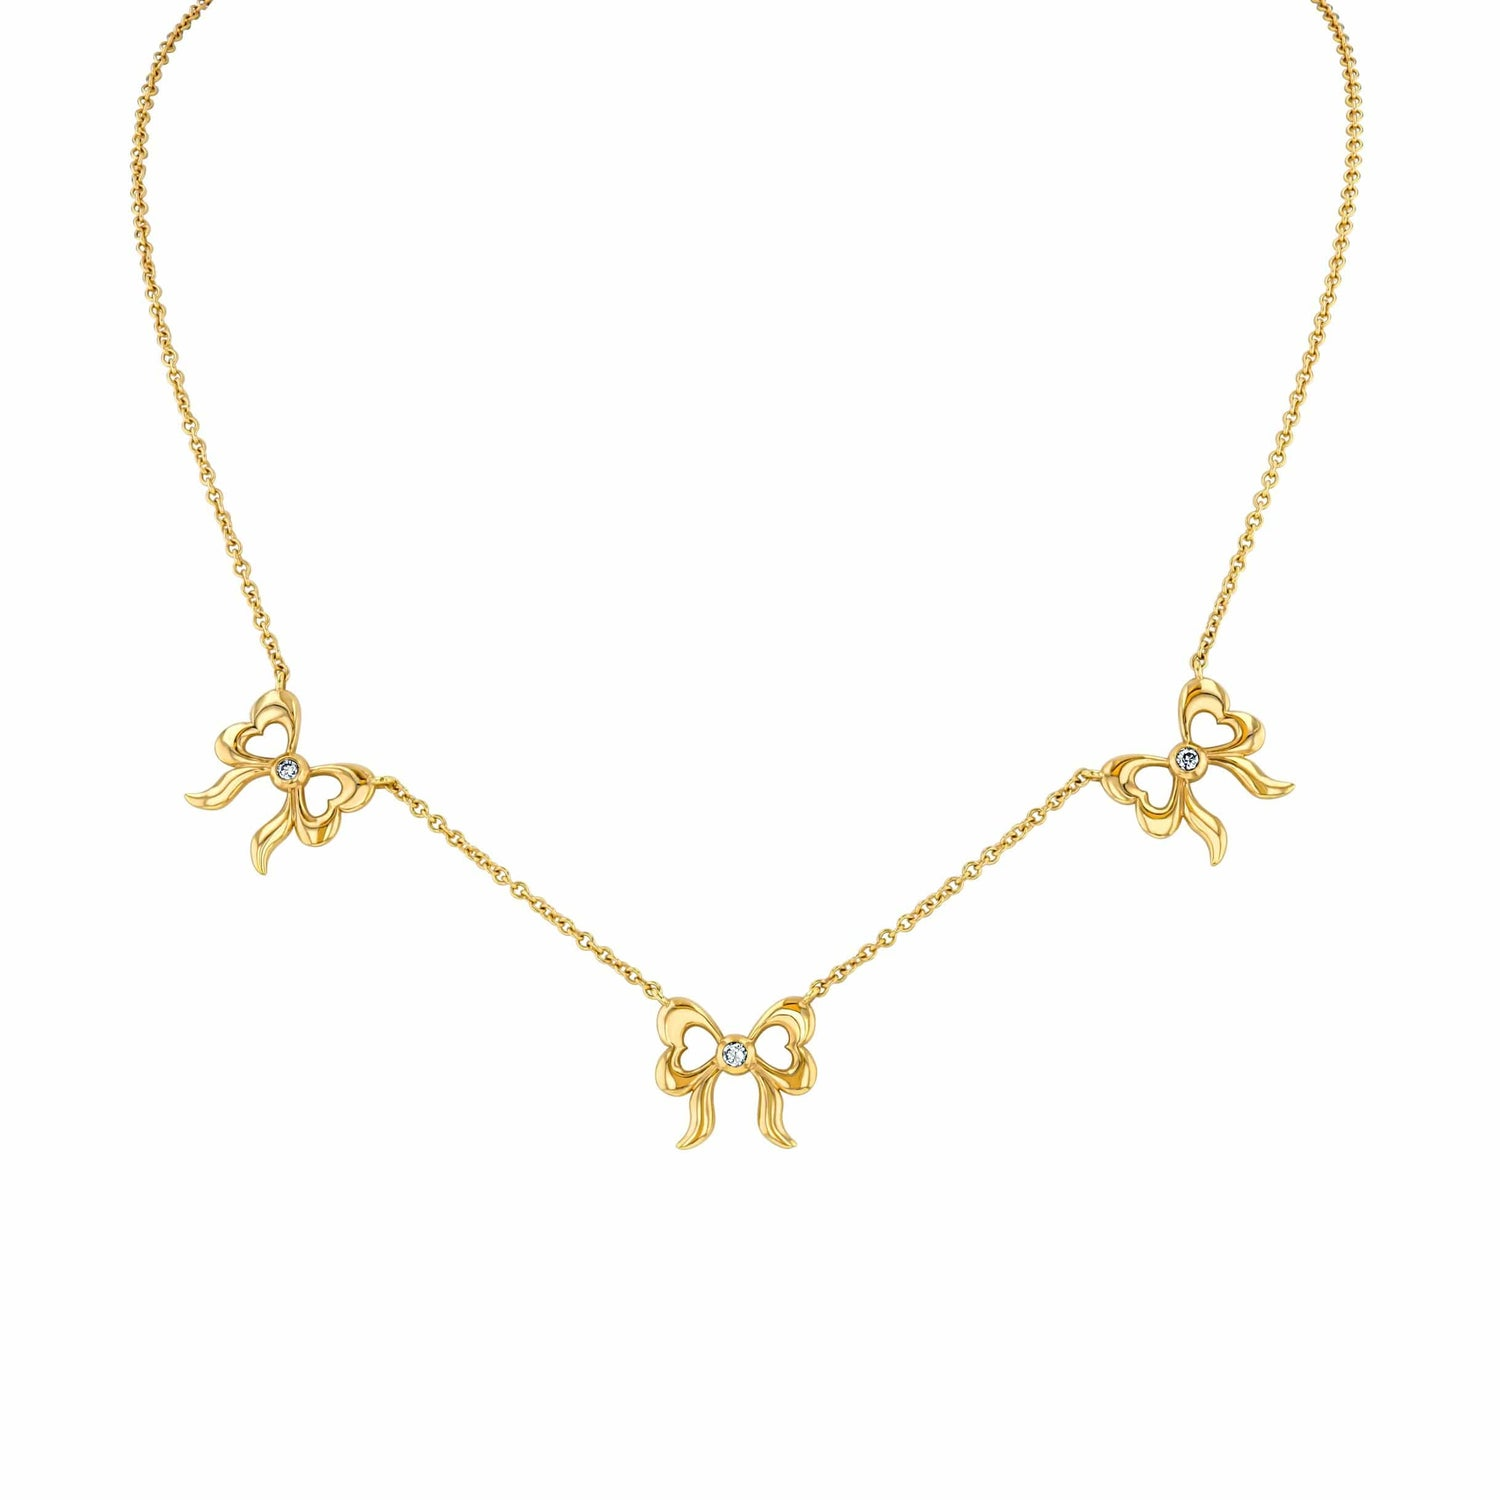 Three Bow Diamond Necklace in 18k Yellow Gold Elizabeth Jane Atelier